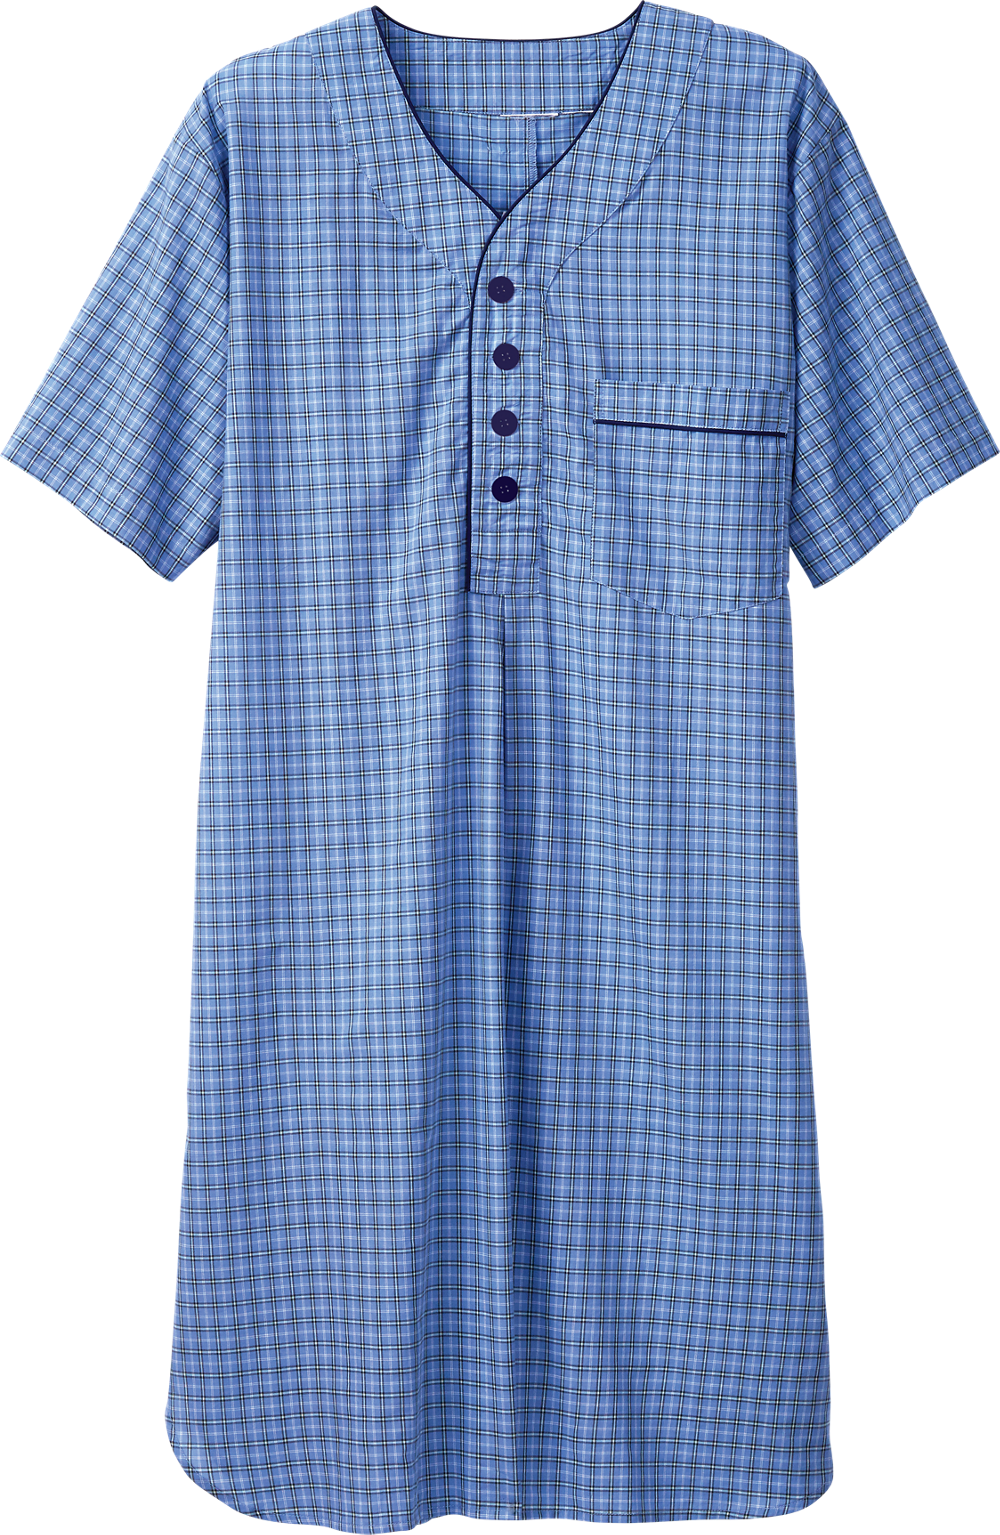 Short-Sleeve Nightshirt for Men